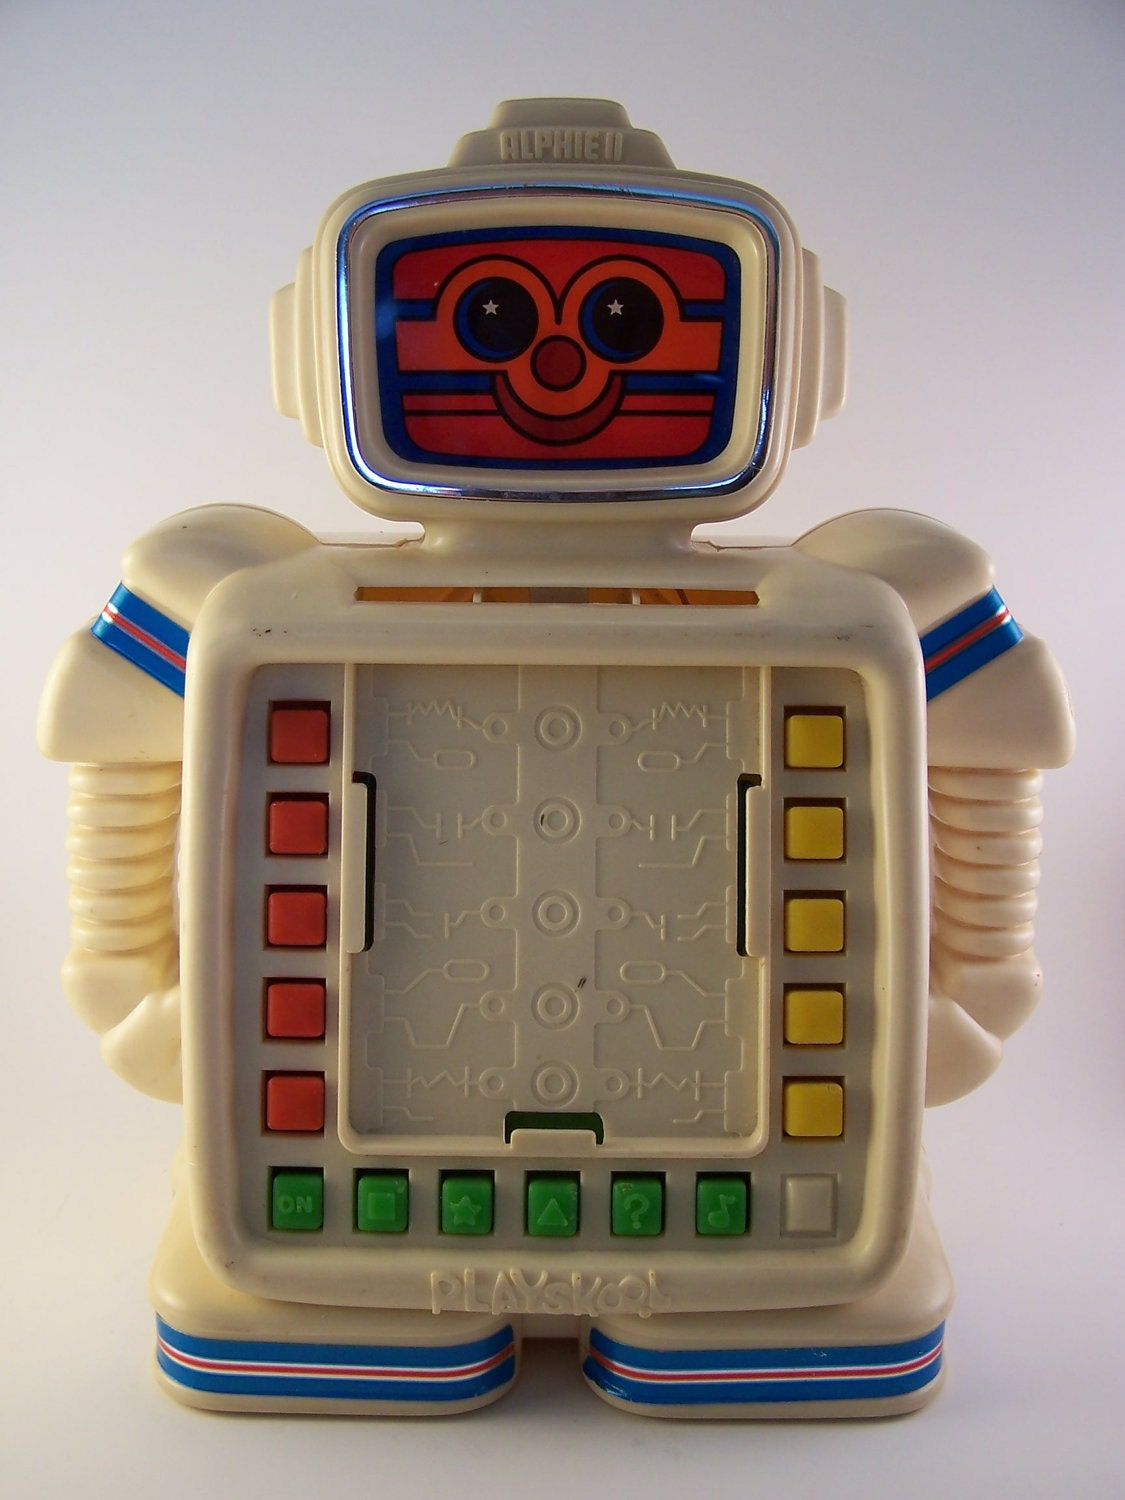 Toys From The 1980s : Vintage alphie ii robot toy s